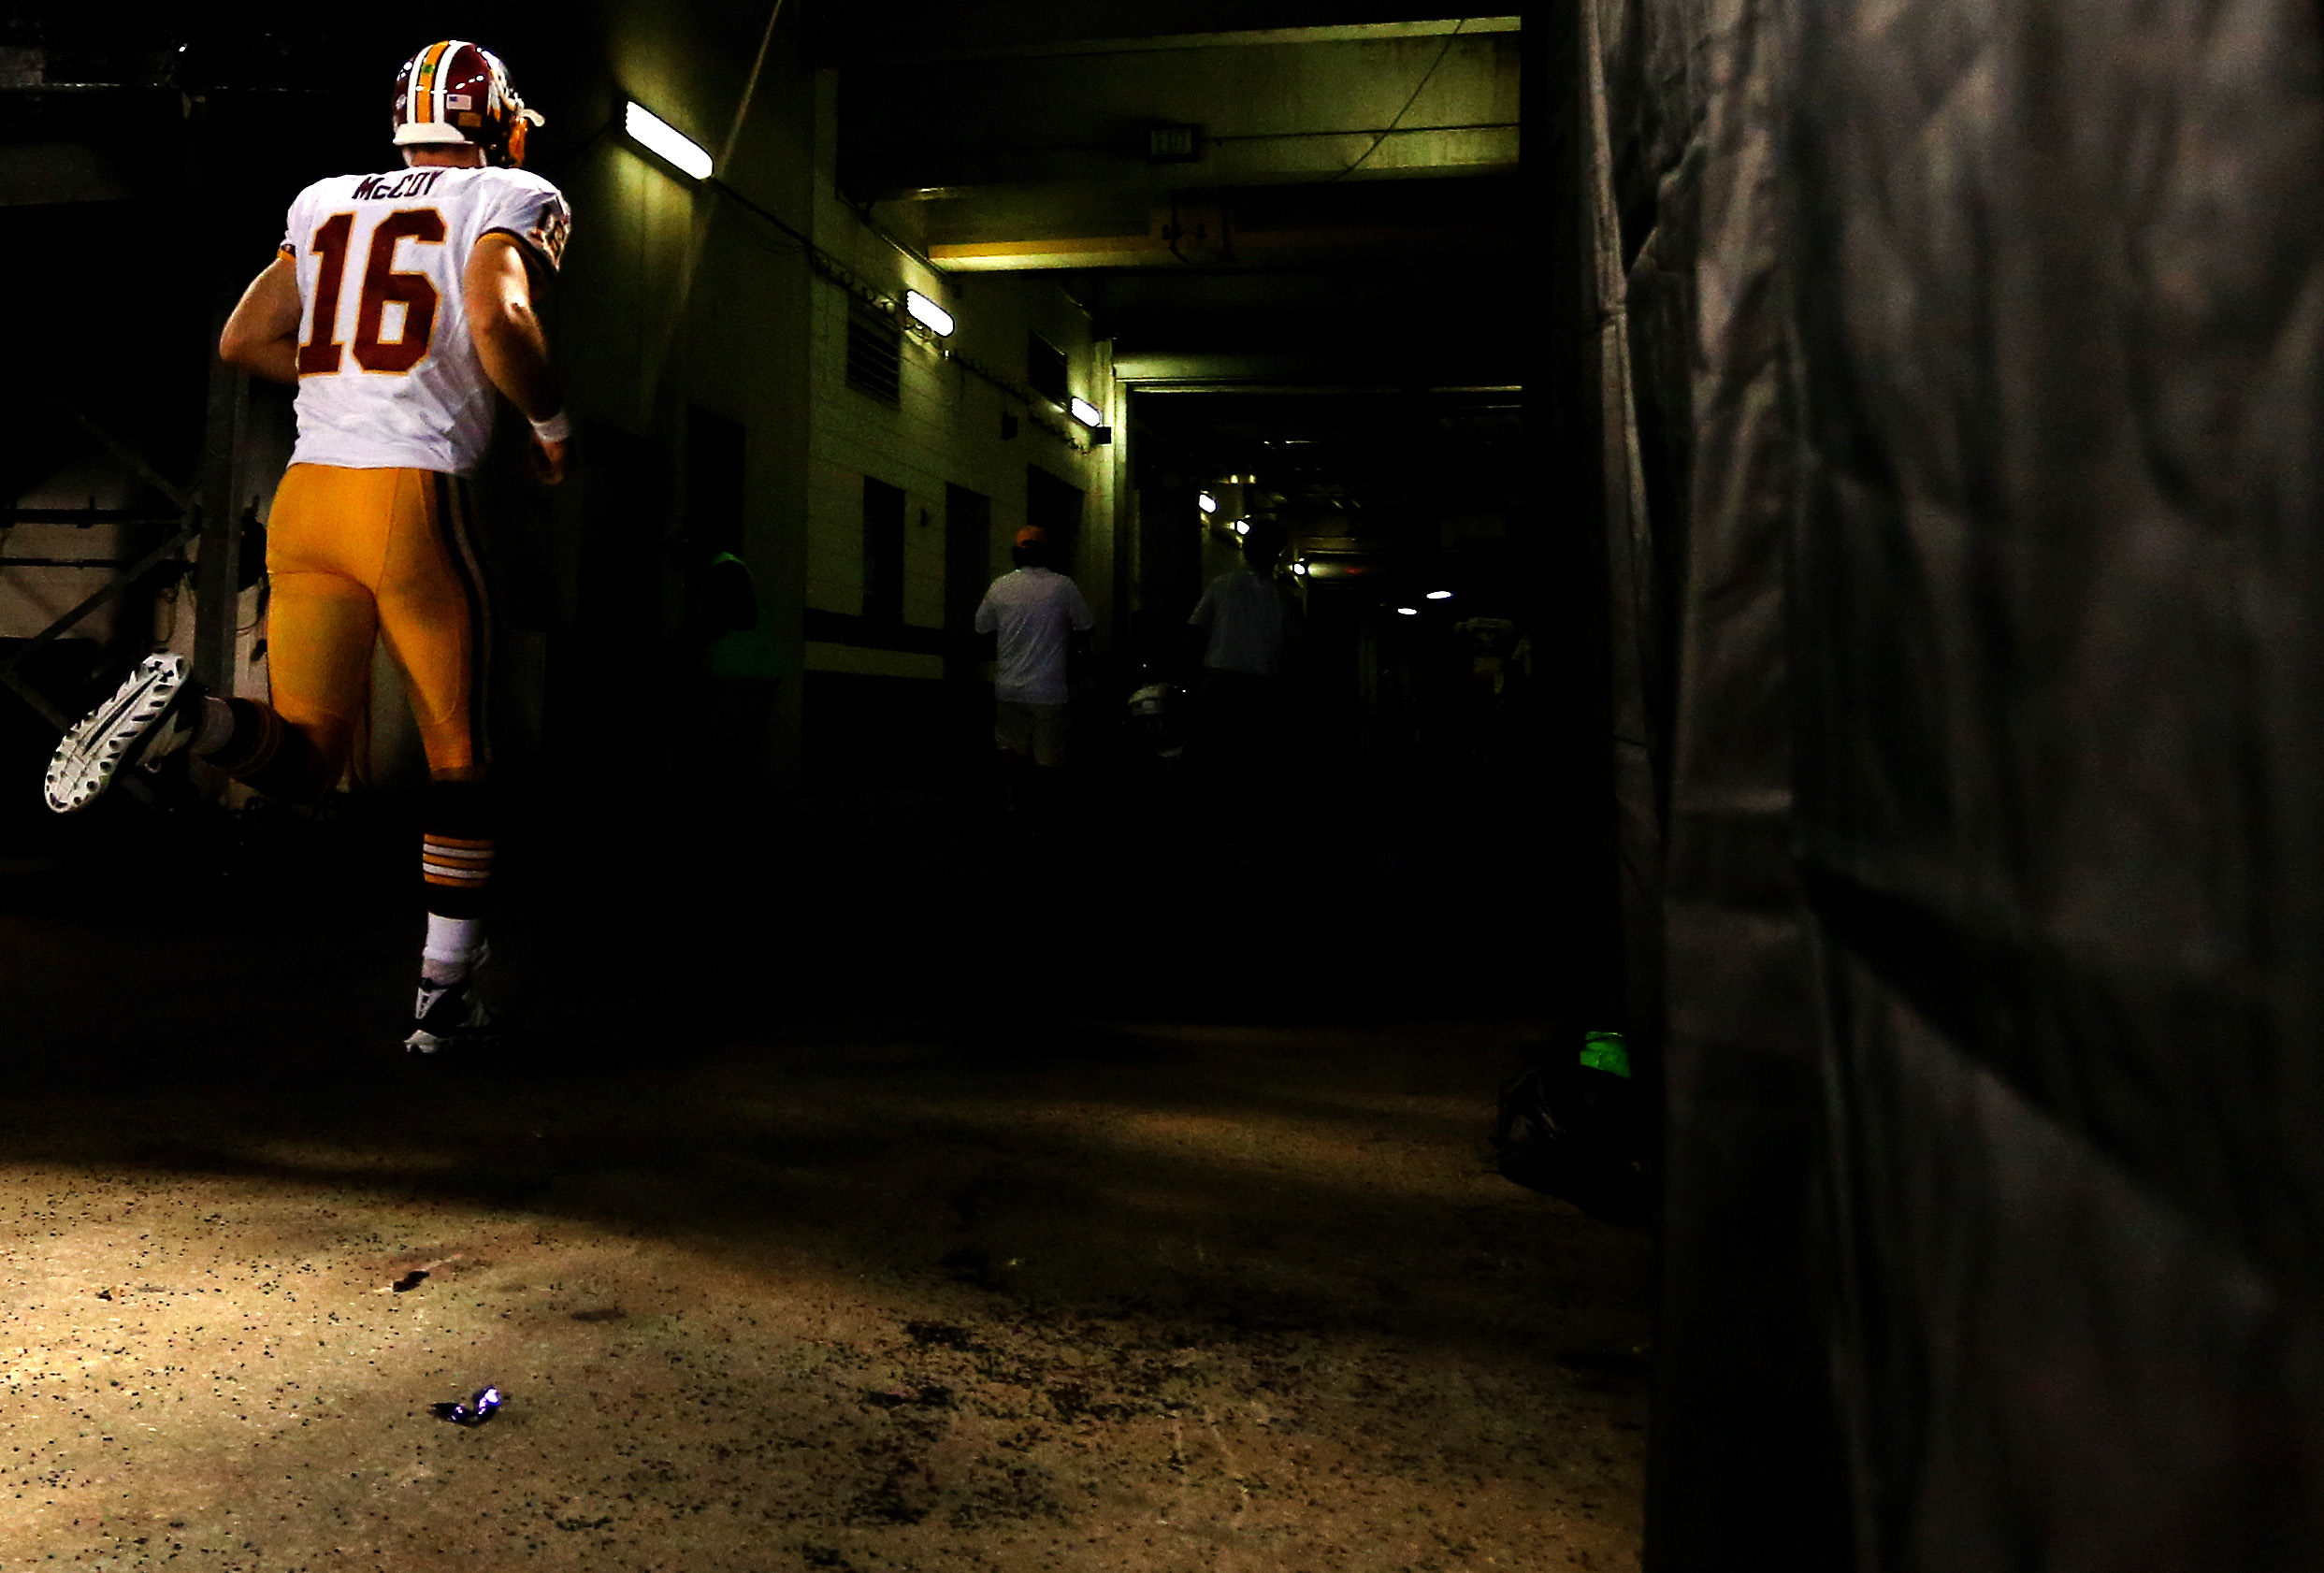 BALTIMORE, MD - AUGUST 29: Quarterback Colt McCoy #16 of the Washington Redskins runs off the field after a preseason game against the Baltimore Ravens at M&T Bank Stadium on August 29, 2015 in Baltimore, Maryland. (Photo by Matt Hazlett/ Getty Images)